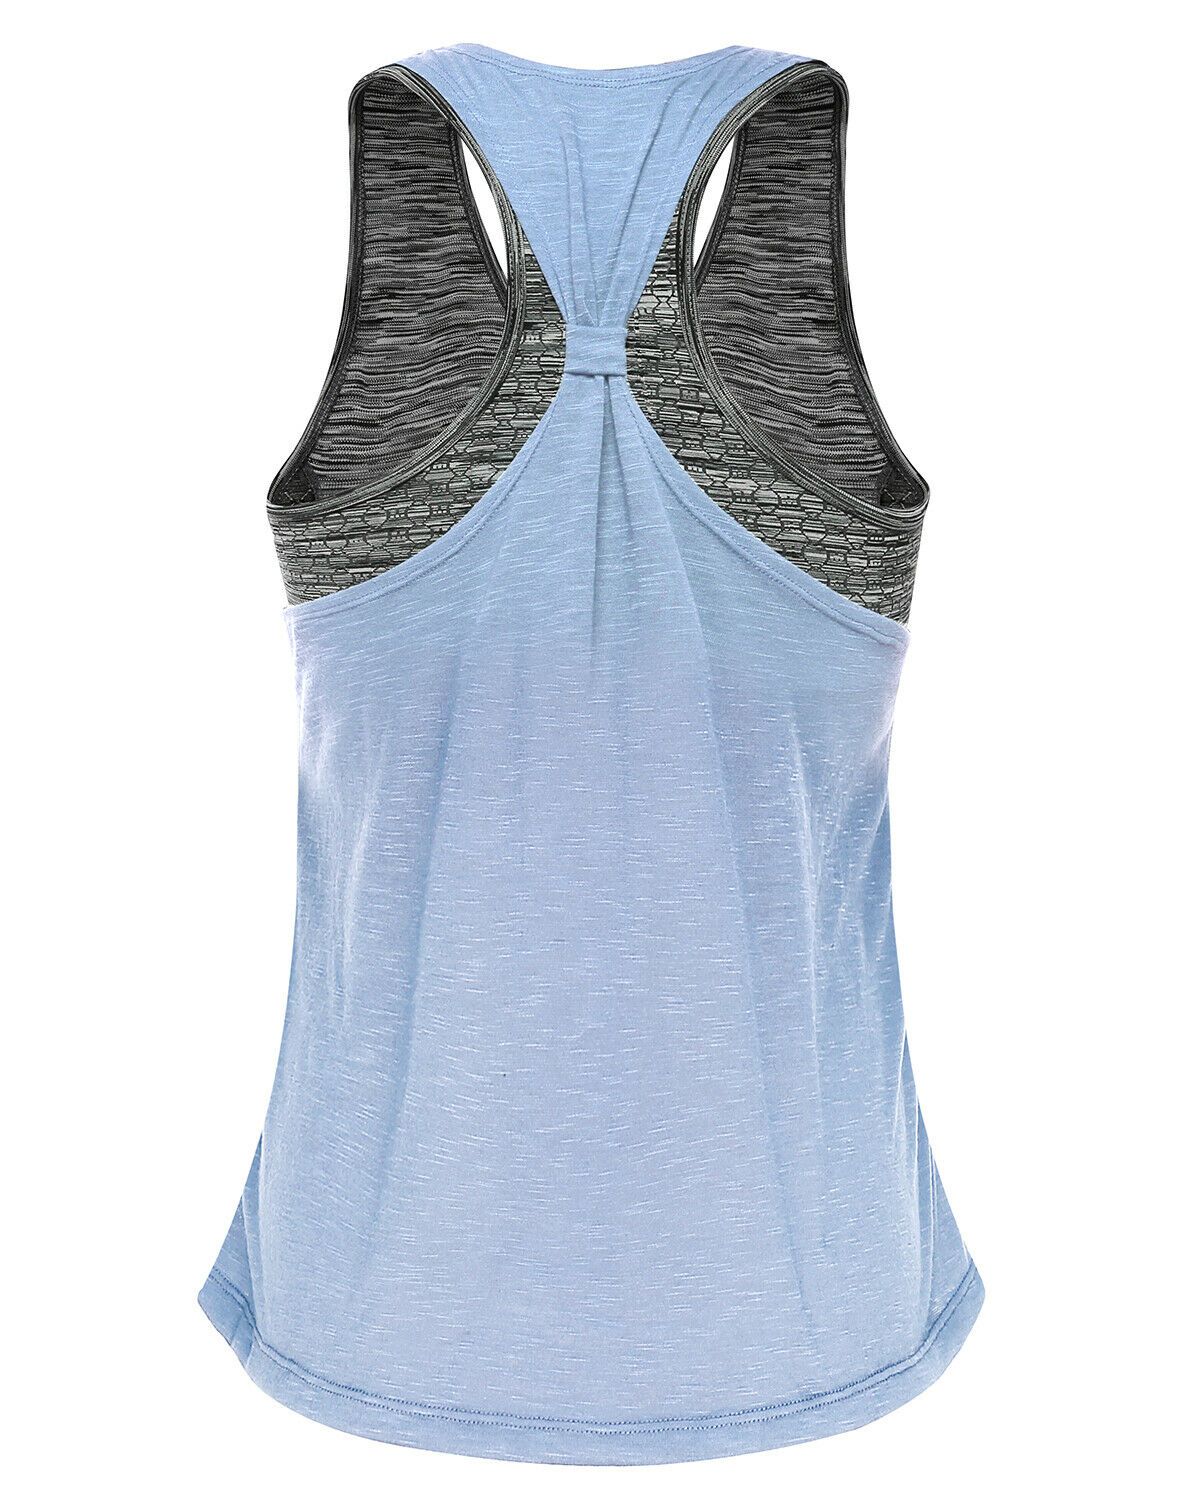 Yoga Tops for Women with Sports Bra Workout Shirts Pilates Gym Exercises